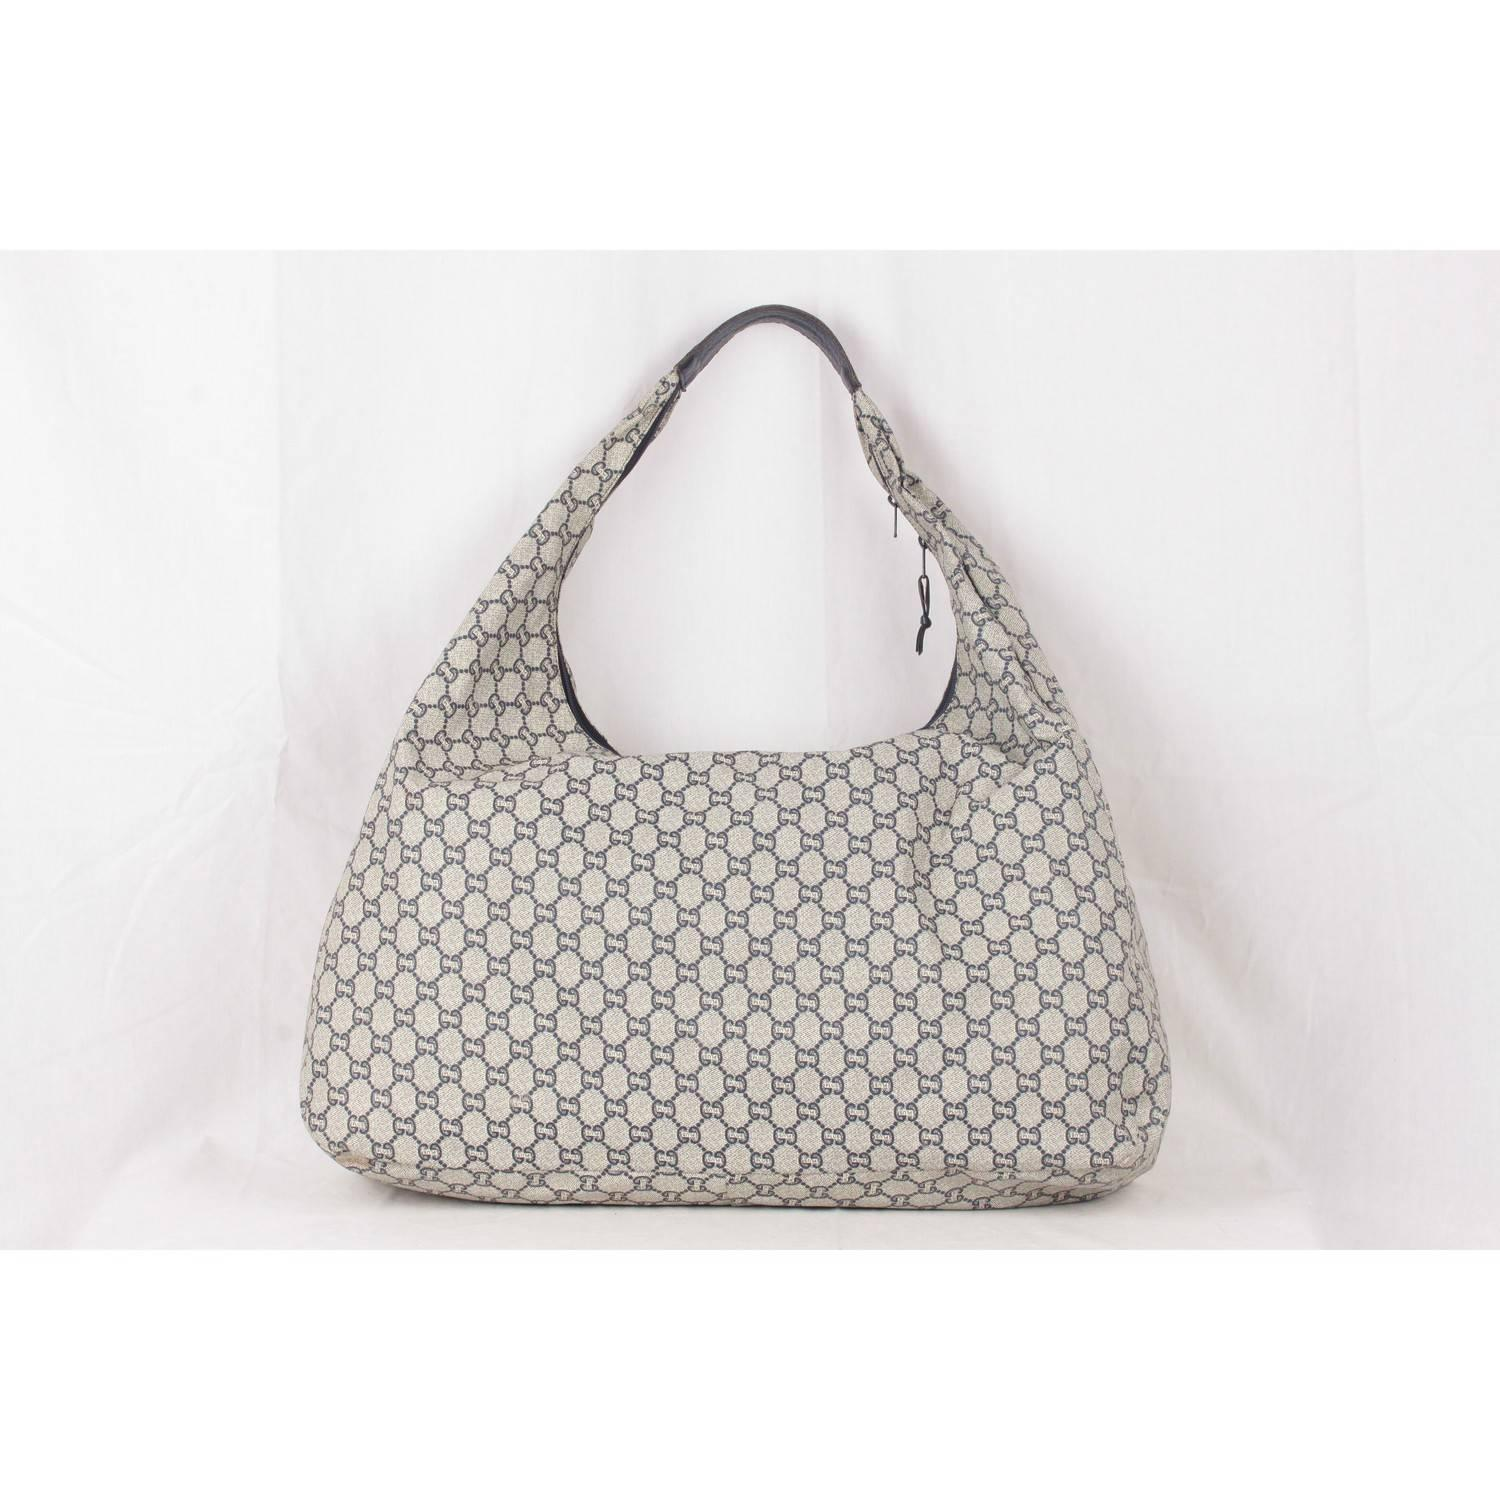 aa3374f81f0 Gucci Plus Vintage Blue Monogram Extra Large Hobo Bag For Sale at 1stdibs